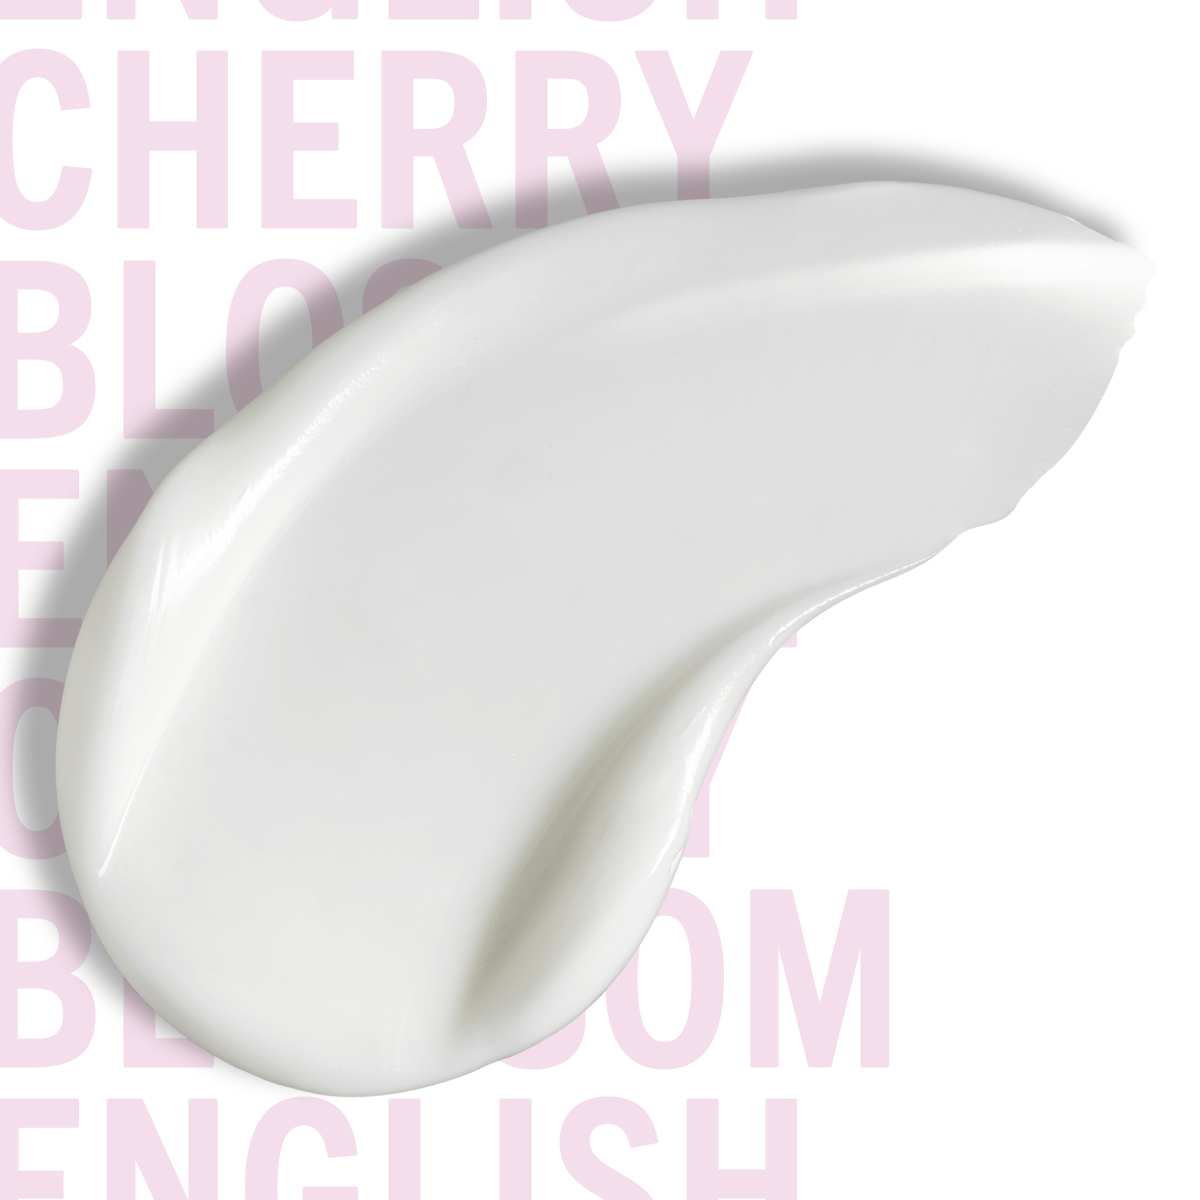 English Cherry Blossom Rich Almond Hand Creme 40ml | Airy blossom with black cherries, fig and bergamot for a sparkling citrus lift. | Clean All Gender Fragrance | Shay & Blue